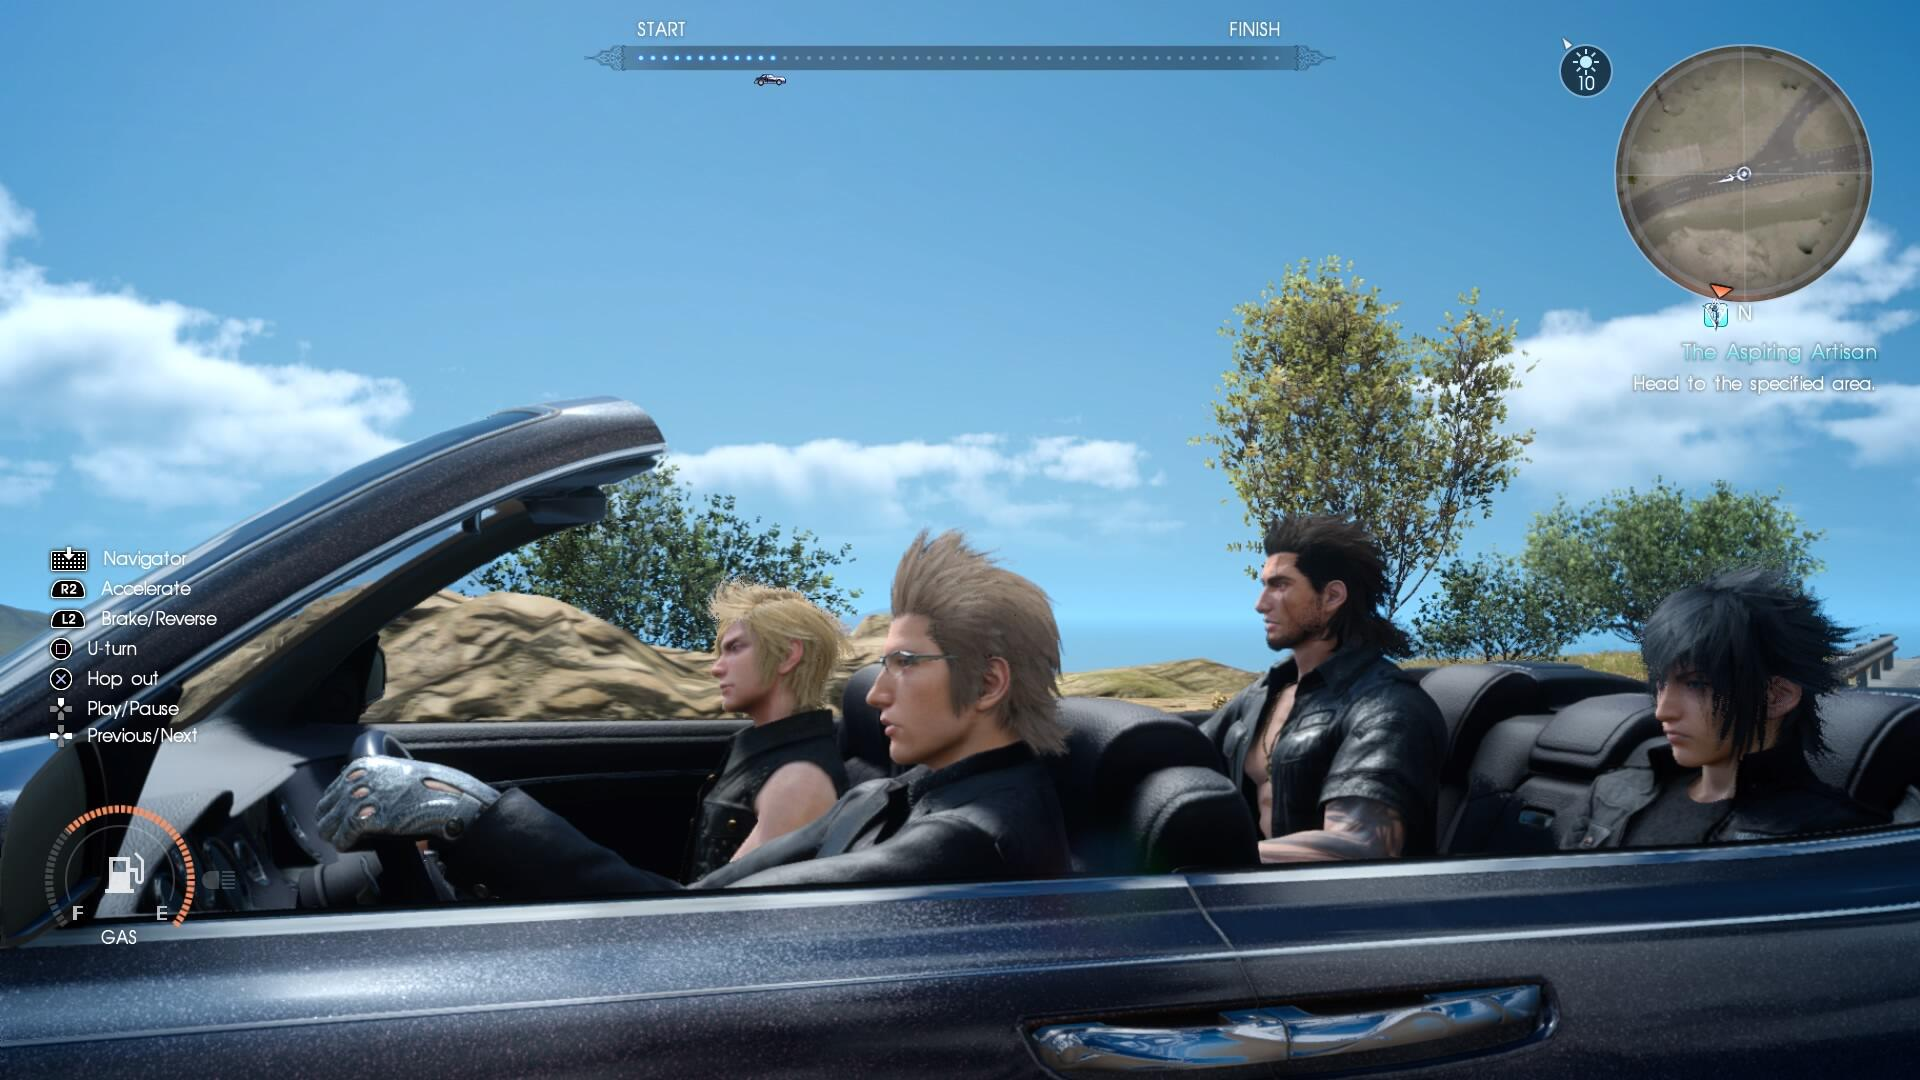 Final Fantasy 15's Last Active Time Report Airs Next Week